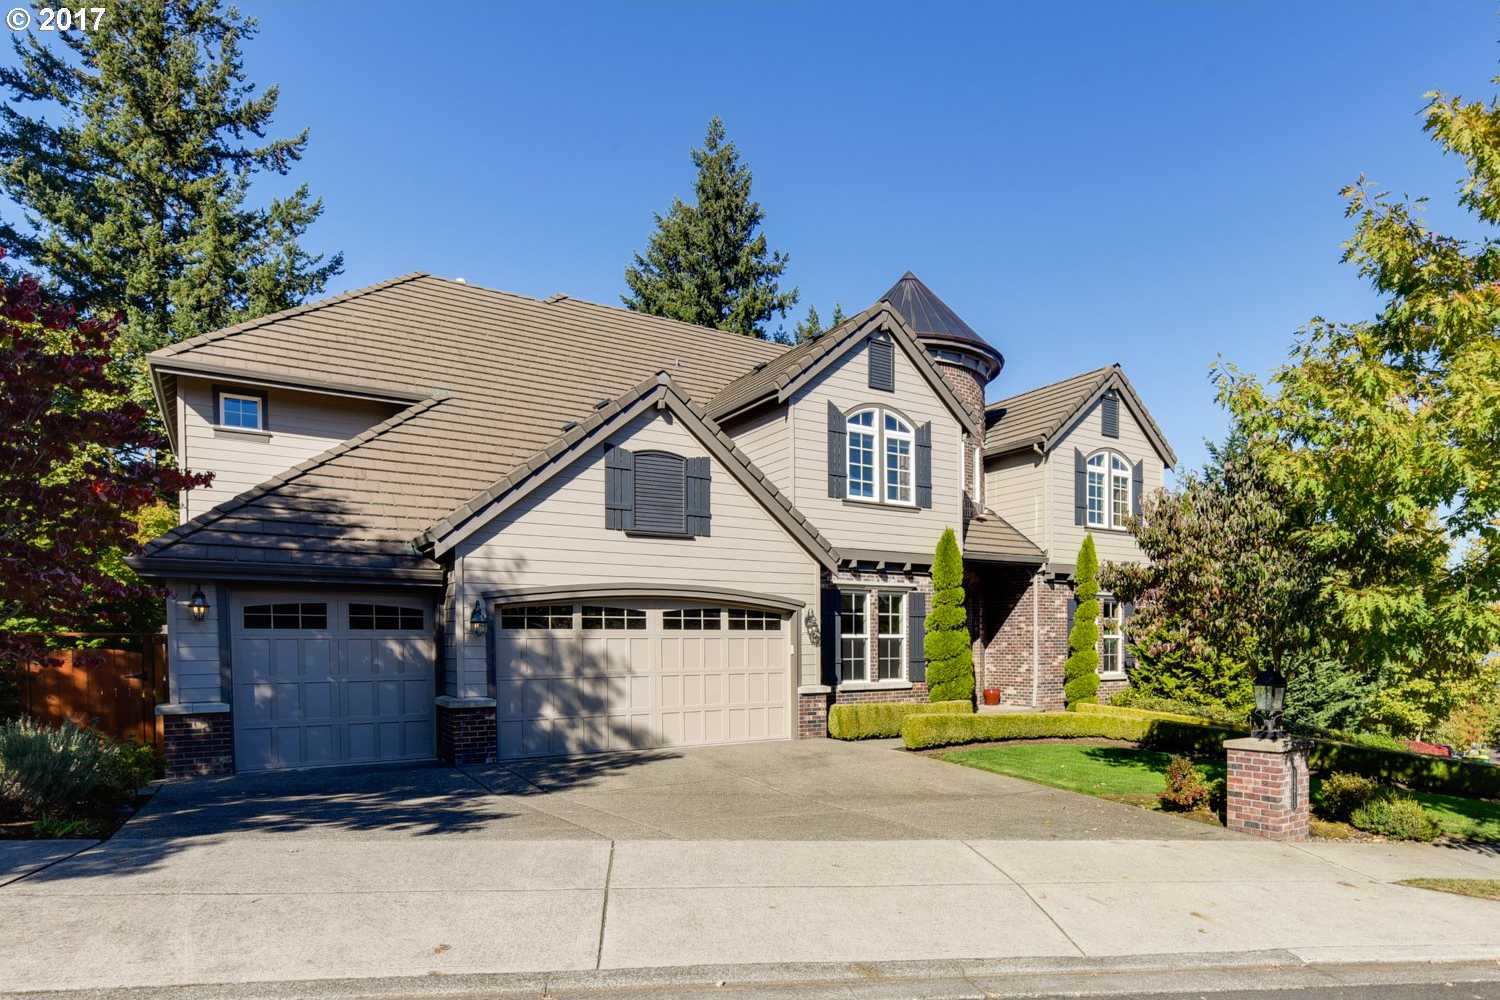 $965,000 - 5Br/6Ba -  for Sale in Beaverton